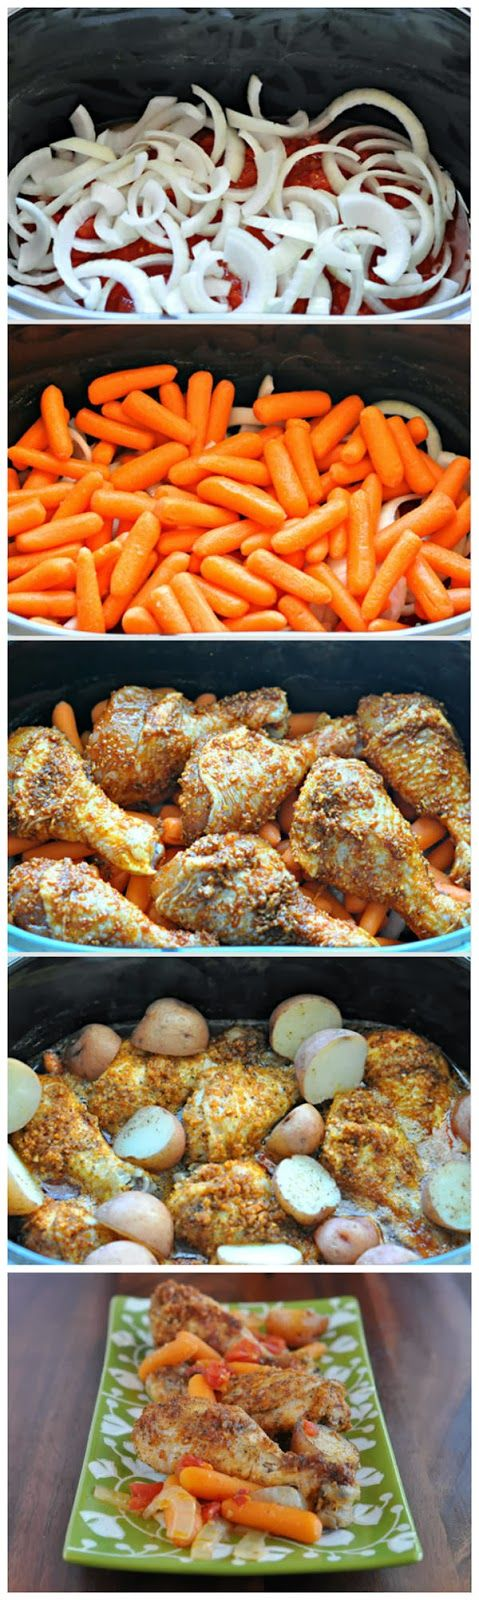 This Smoothed Chicken Recipe is one of my favorite crock pot chicken recipes and has definitely made it into our…